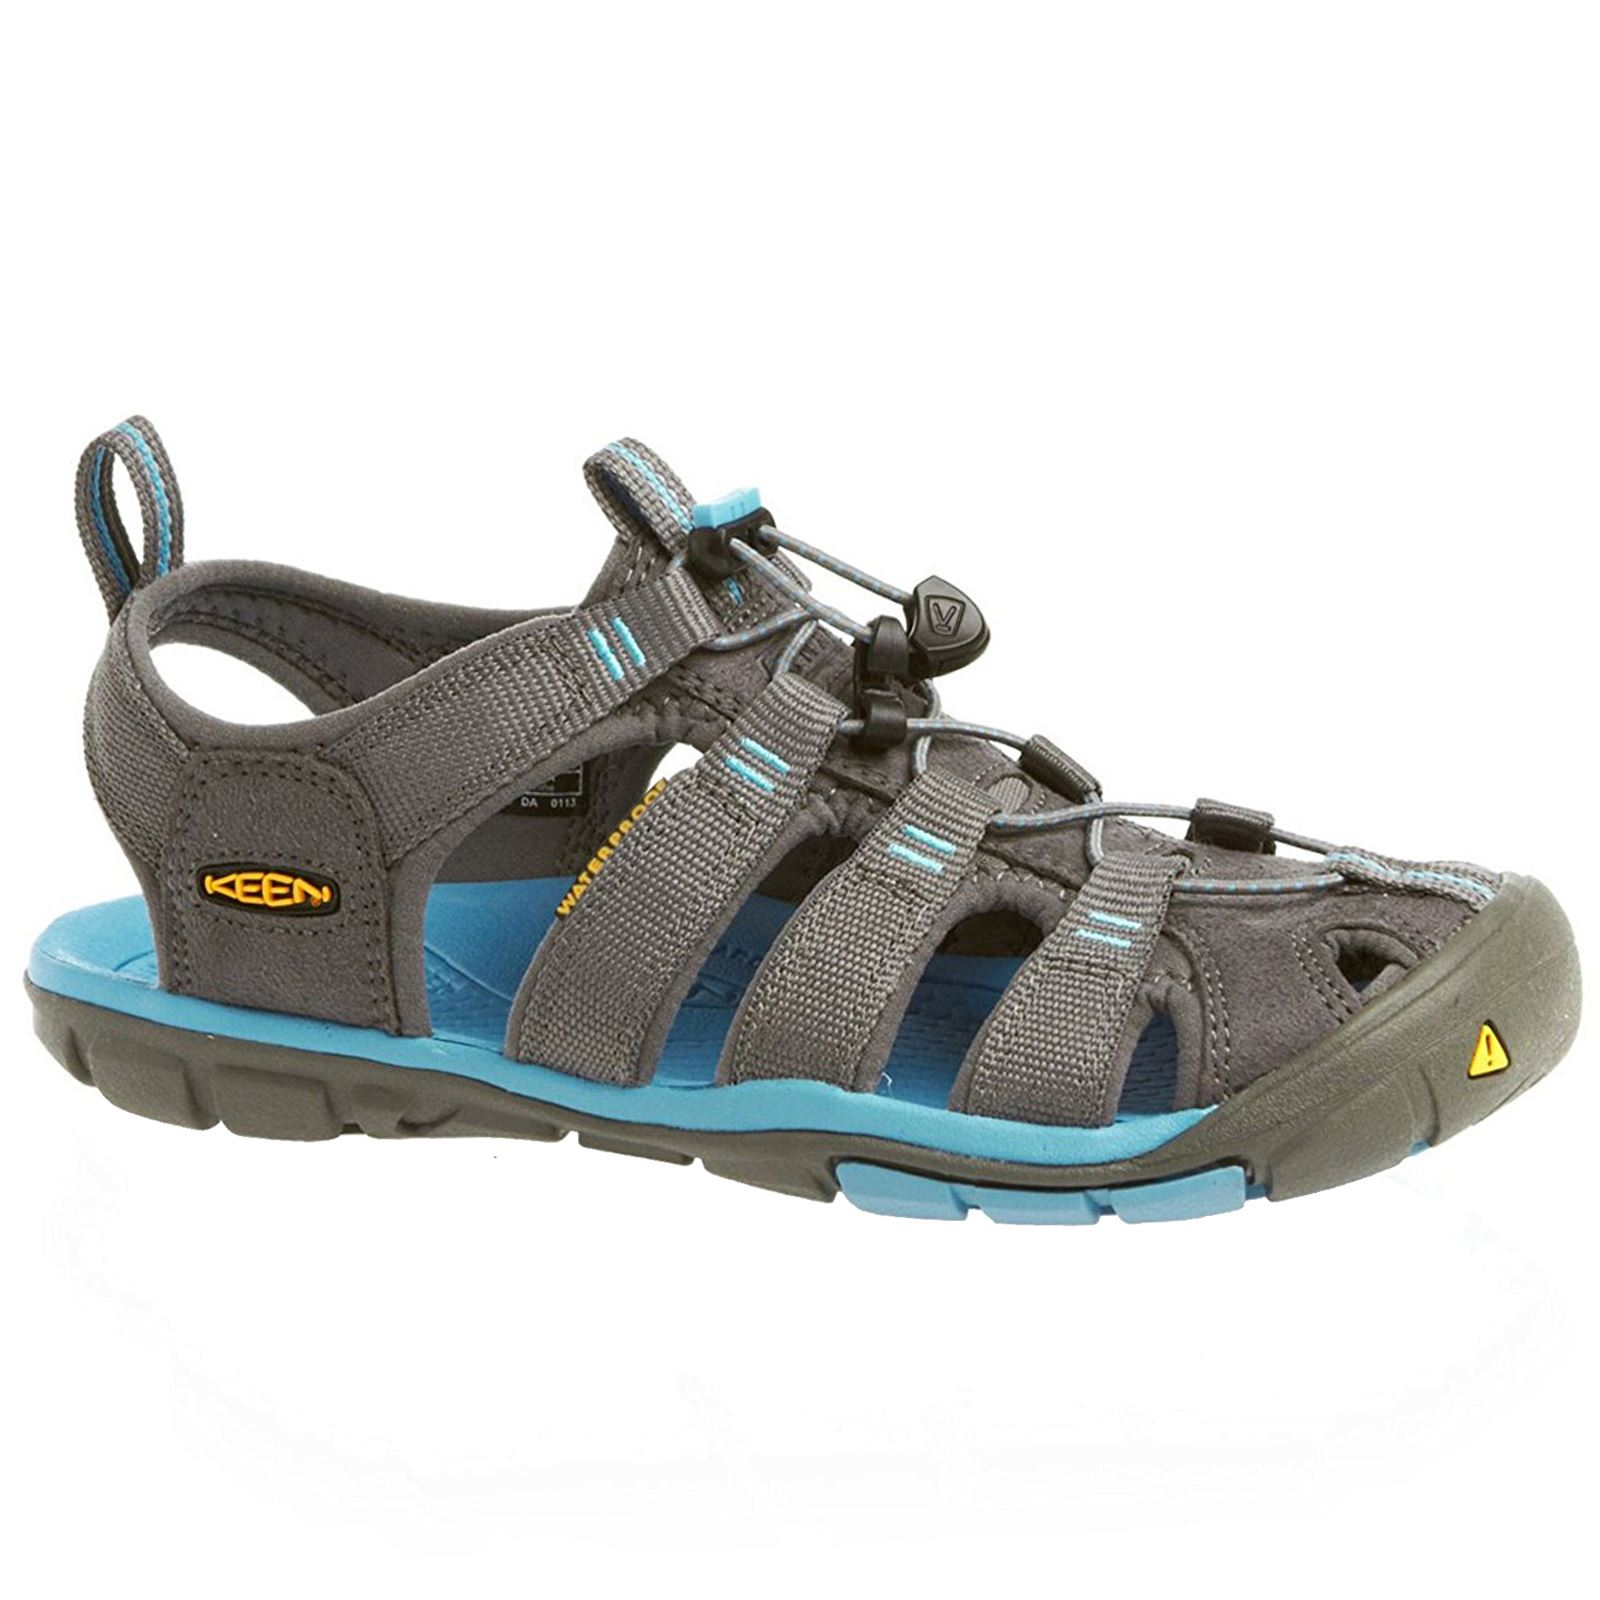 2e223c40b269 Details about Keen Clearwater CNX Gargoyle Norse Blue Womens Outdoor  Walking Sandals Shoes